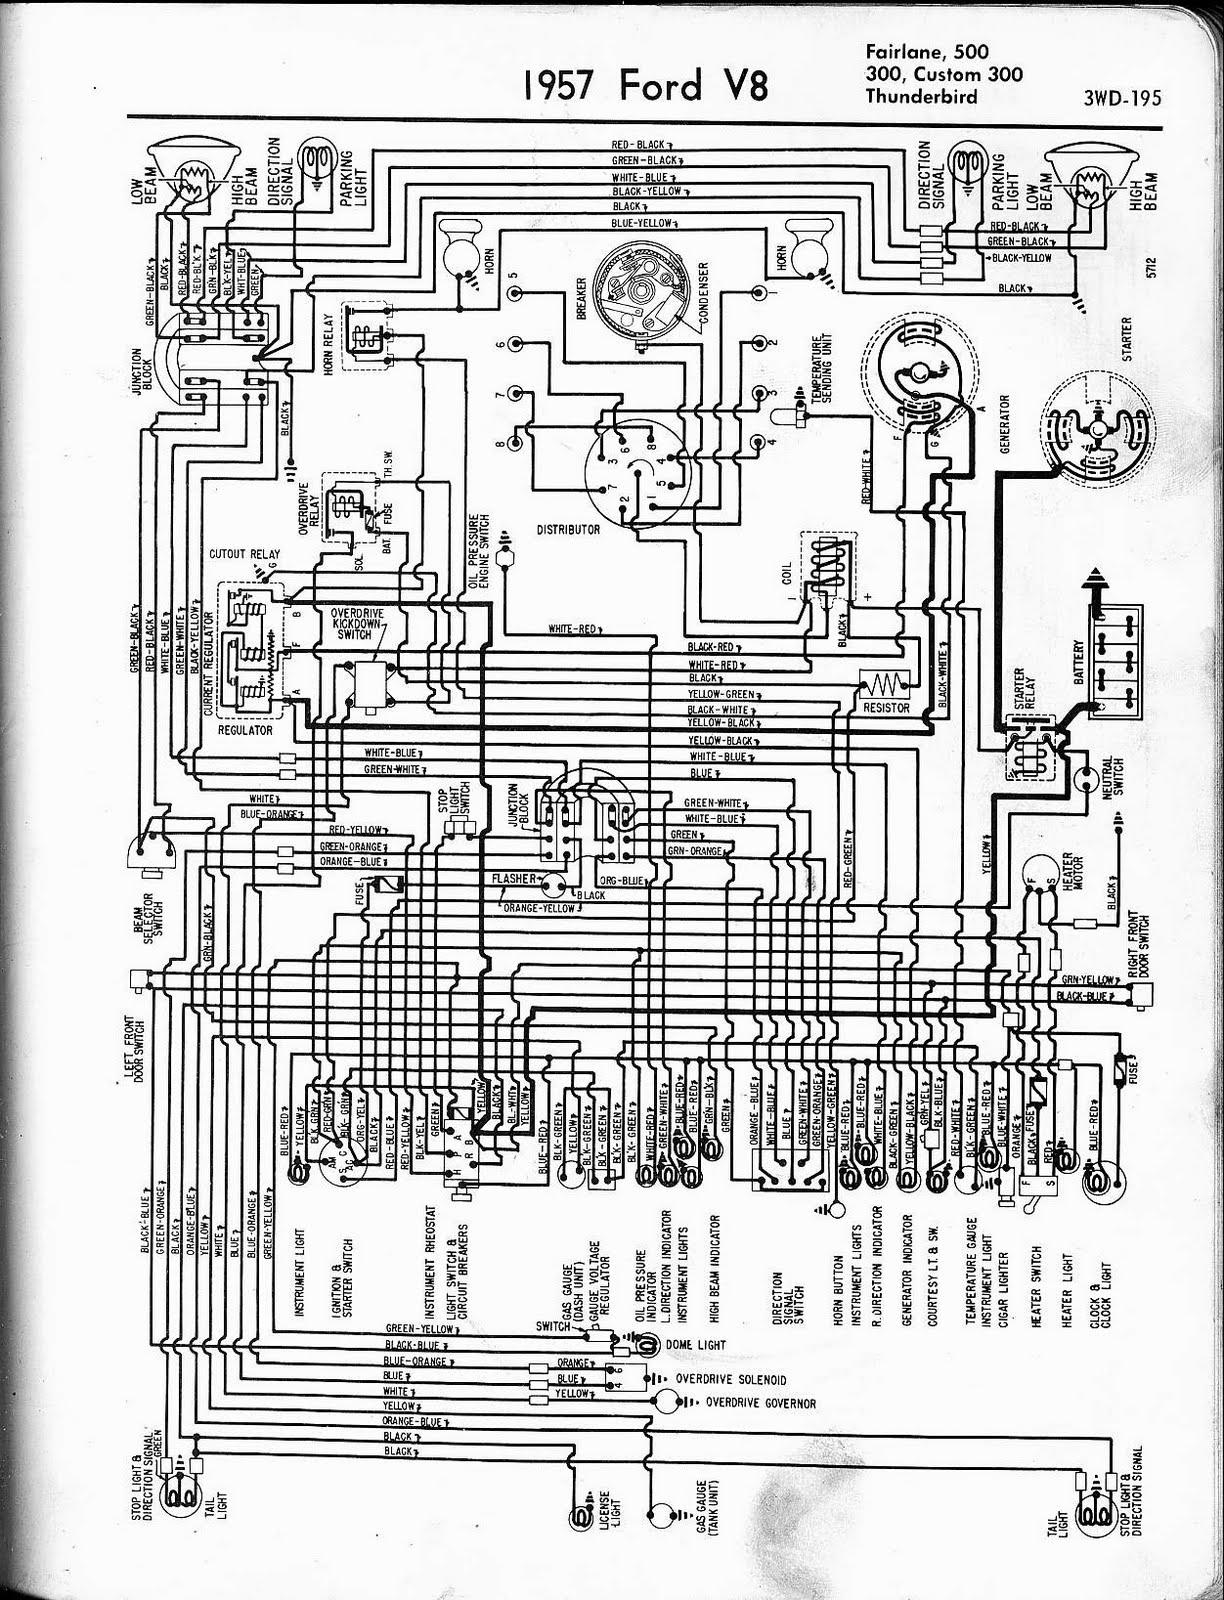 nautic star wiring diagram wiring libraryford 2110 wiring diagram [ 1224 x 1600 Pixel ]